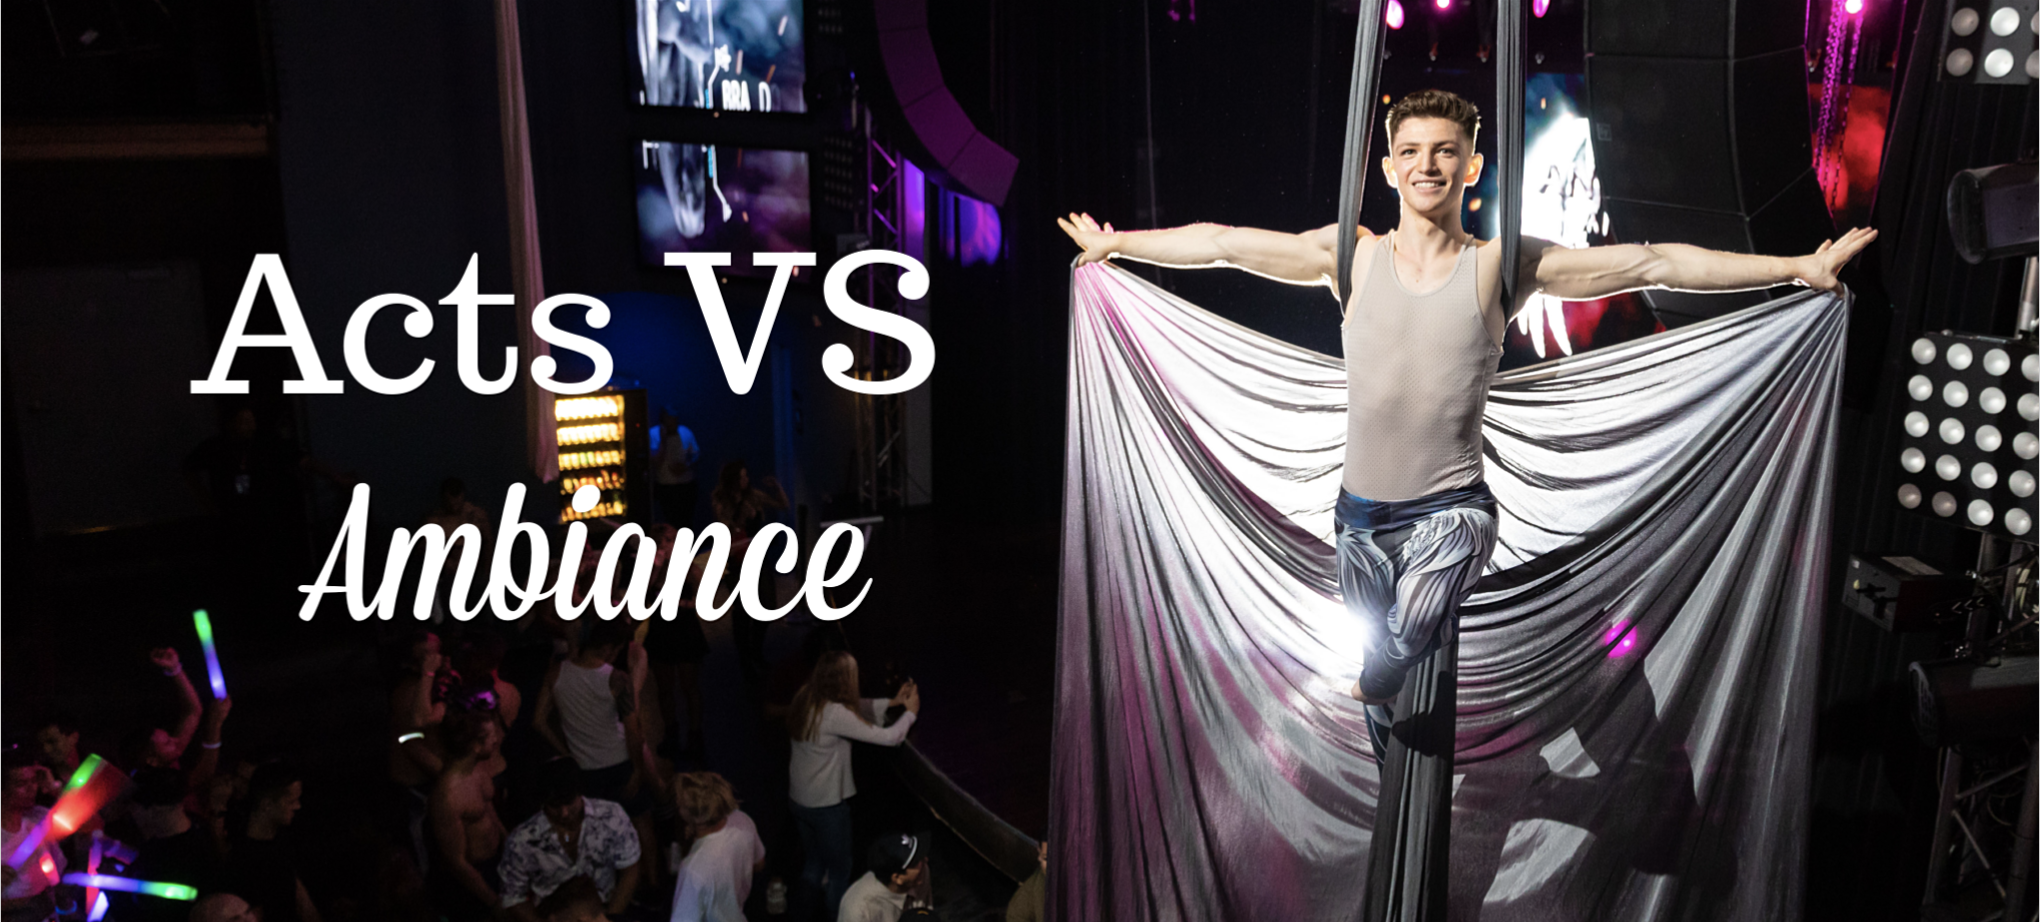 Acts VS Ambiance